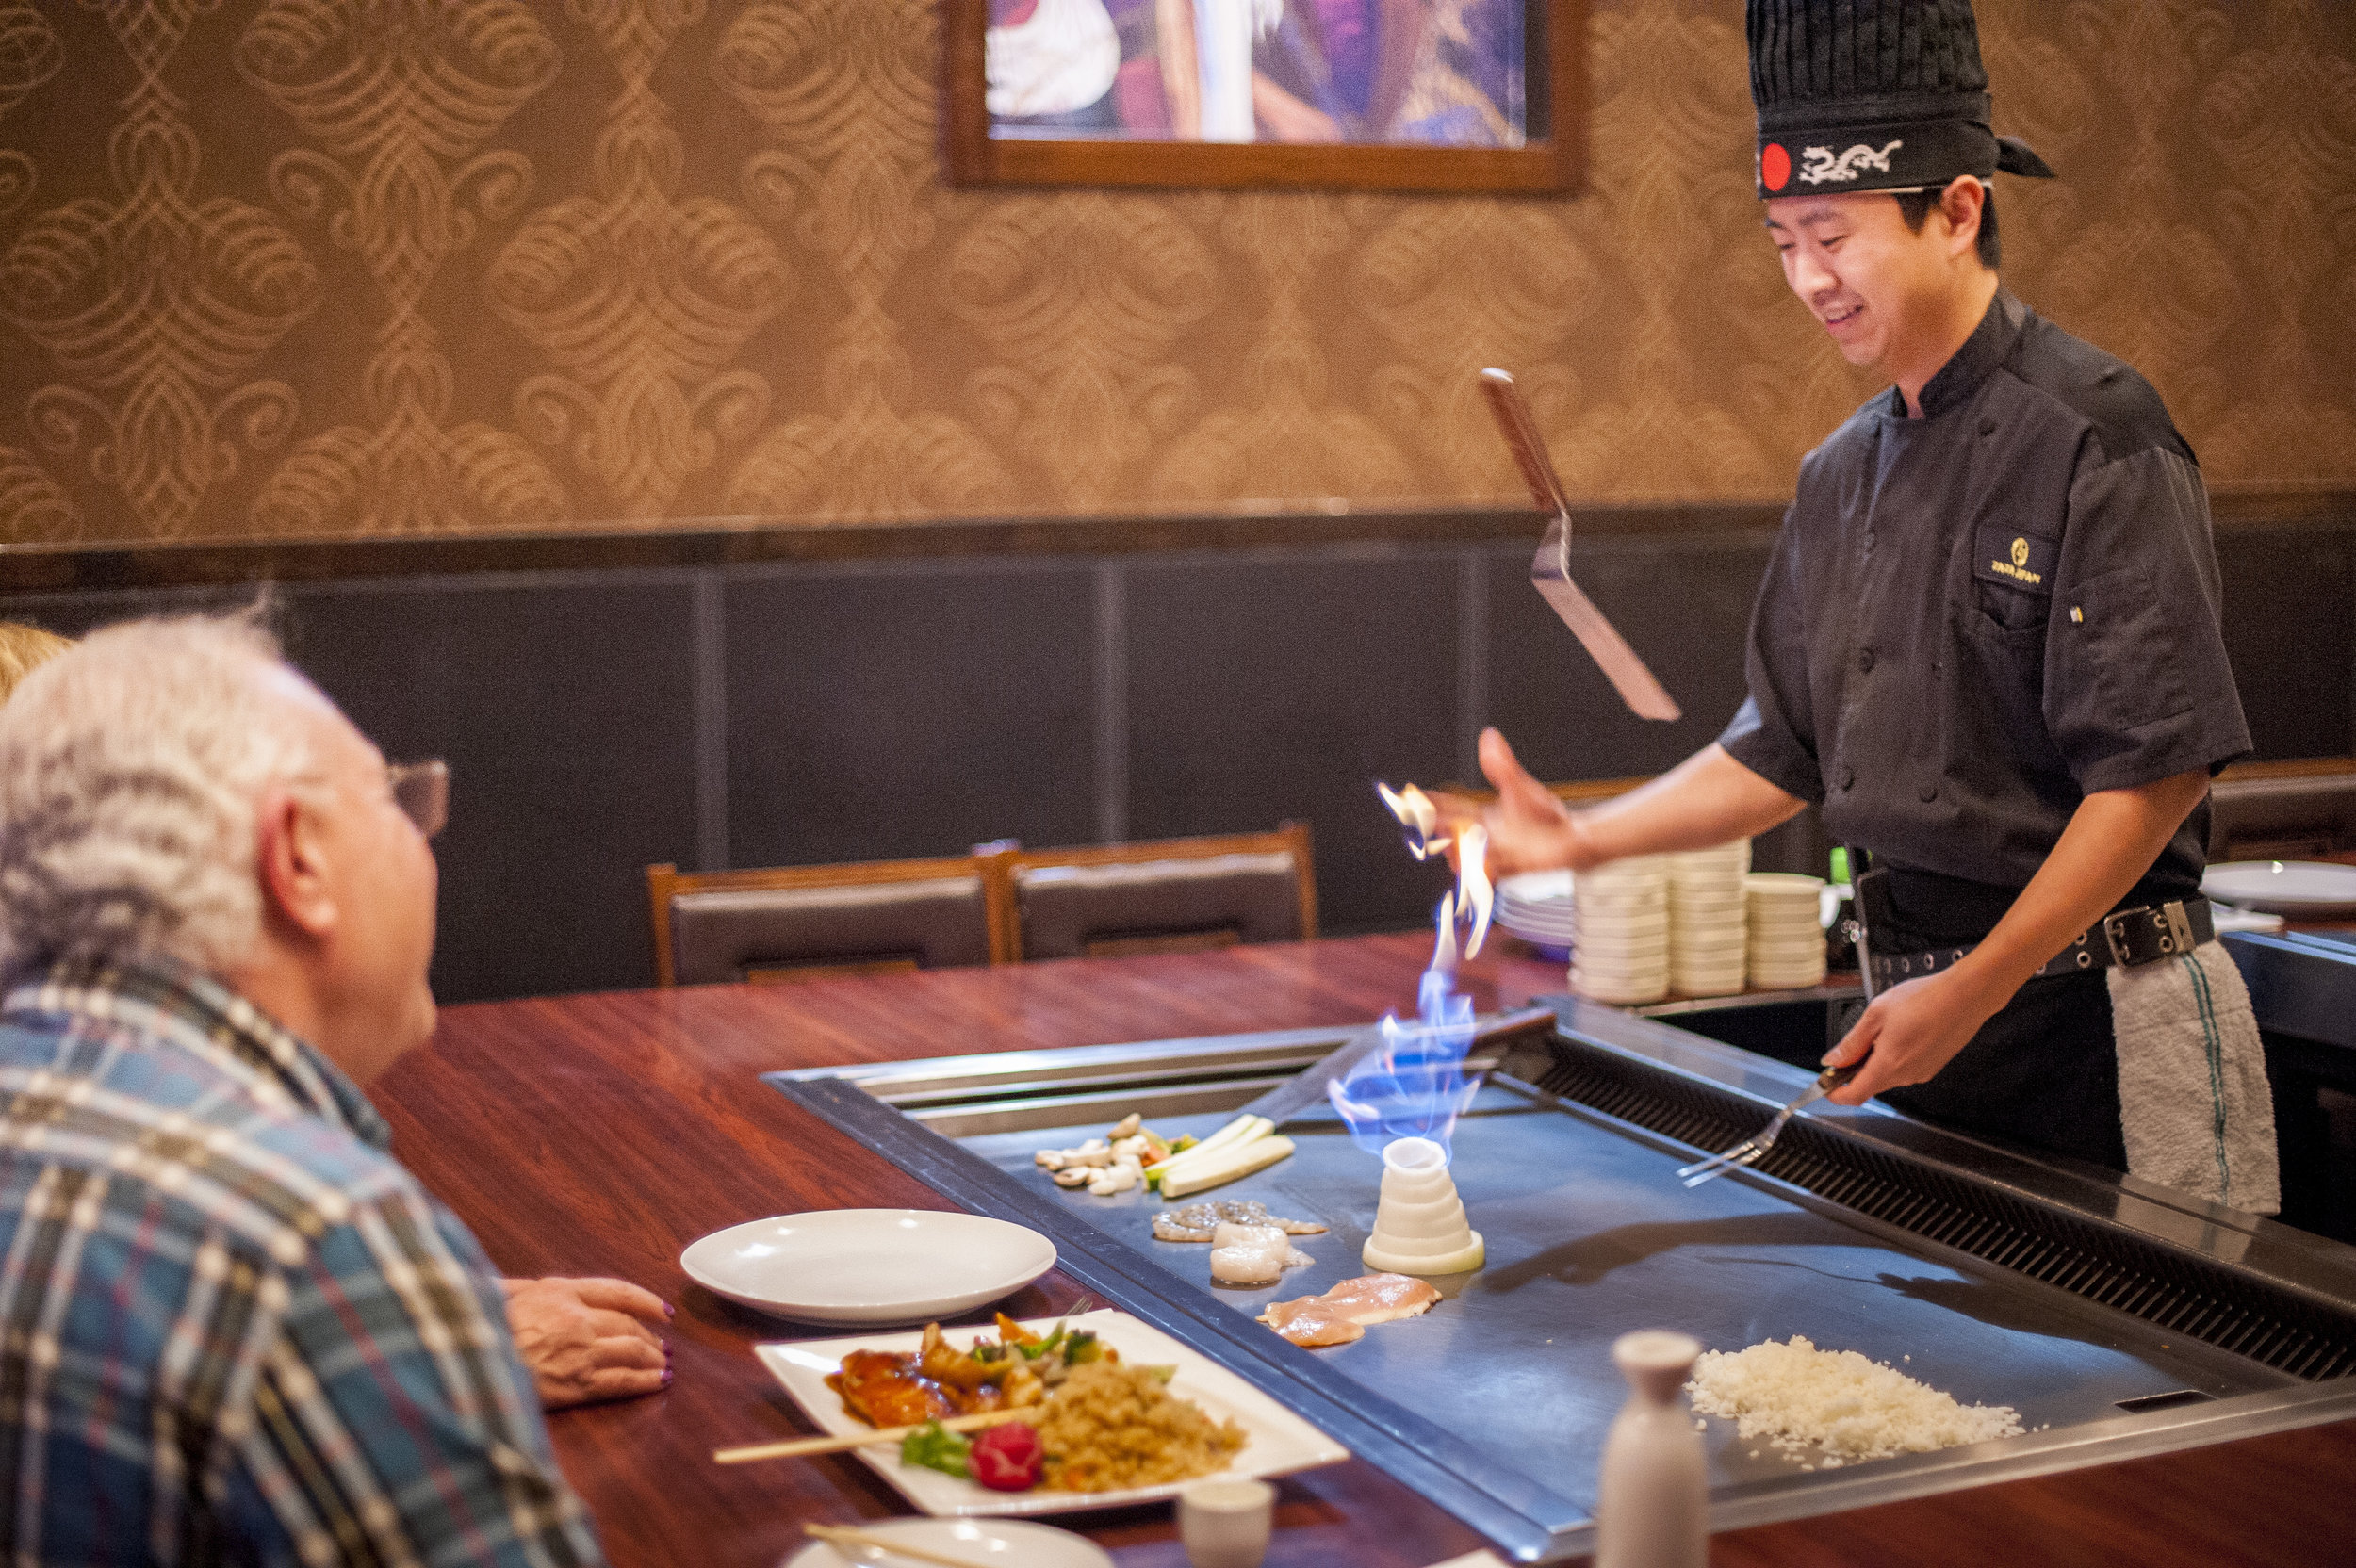 Keven Liu, head hibachi chef at Zaza Japan, wows patrons Hugo and Lisa Gasian with the roaring onion volcano as he prepares their meal.